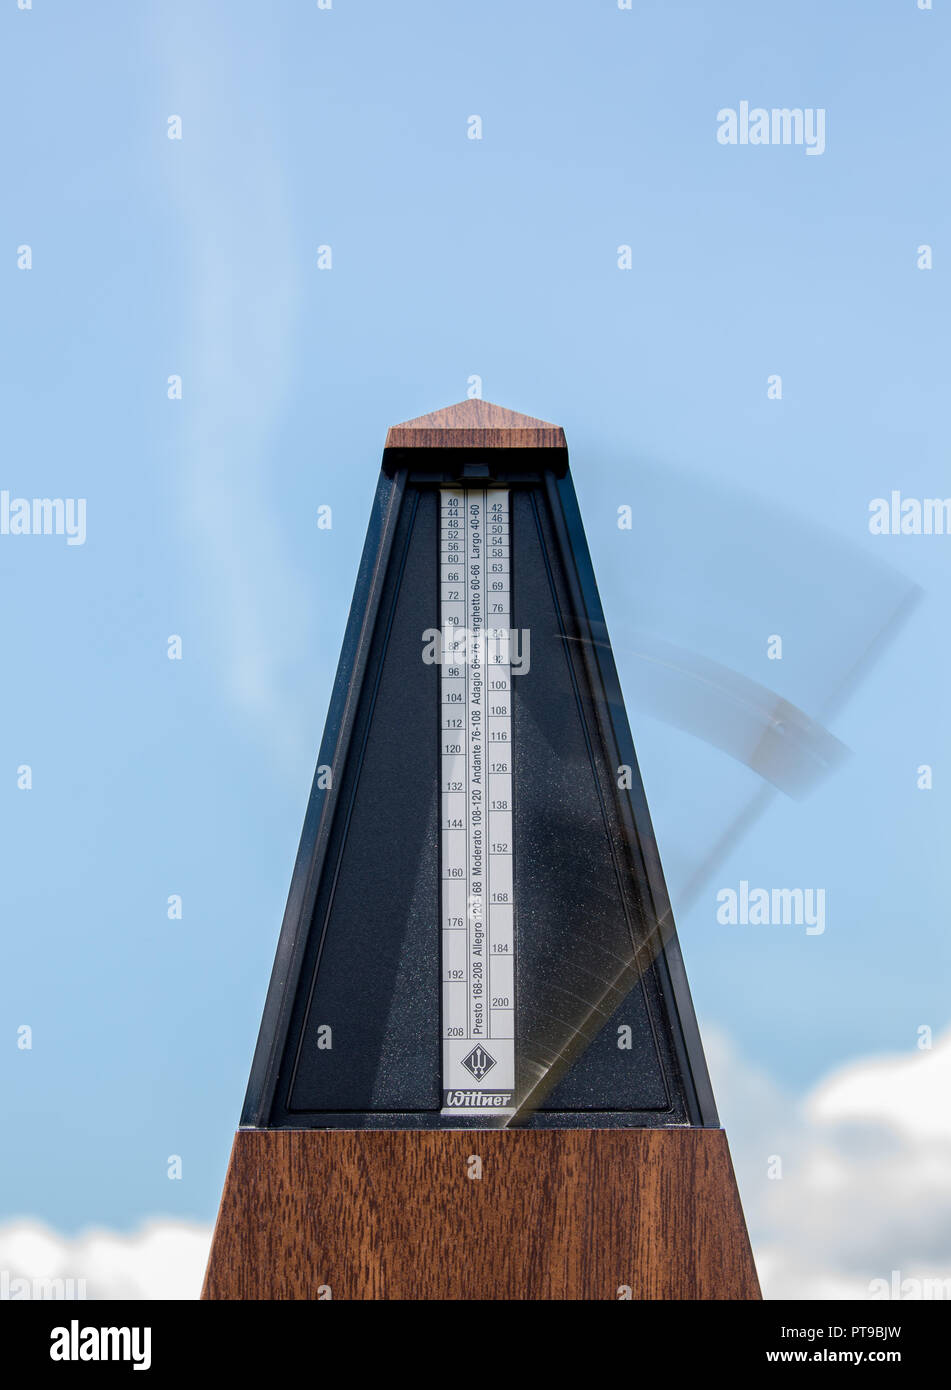 Portrait close up of musical timekeeping metronome in motion against blue sky background. Concept: time movement, time moving fast, time flies Stock Photo